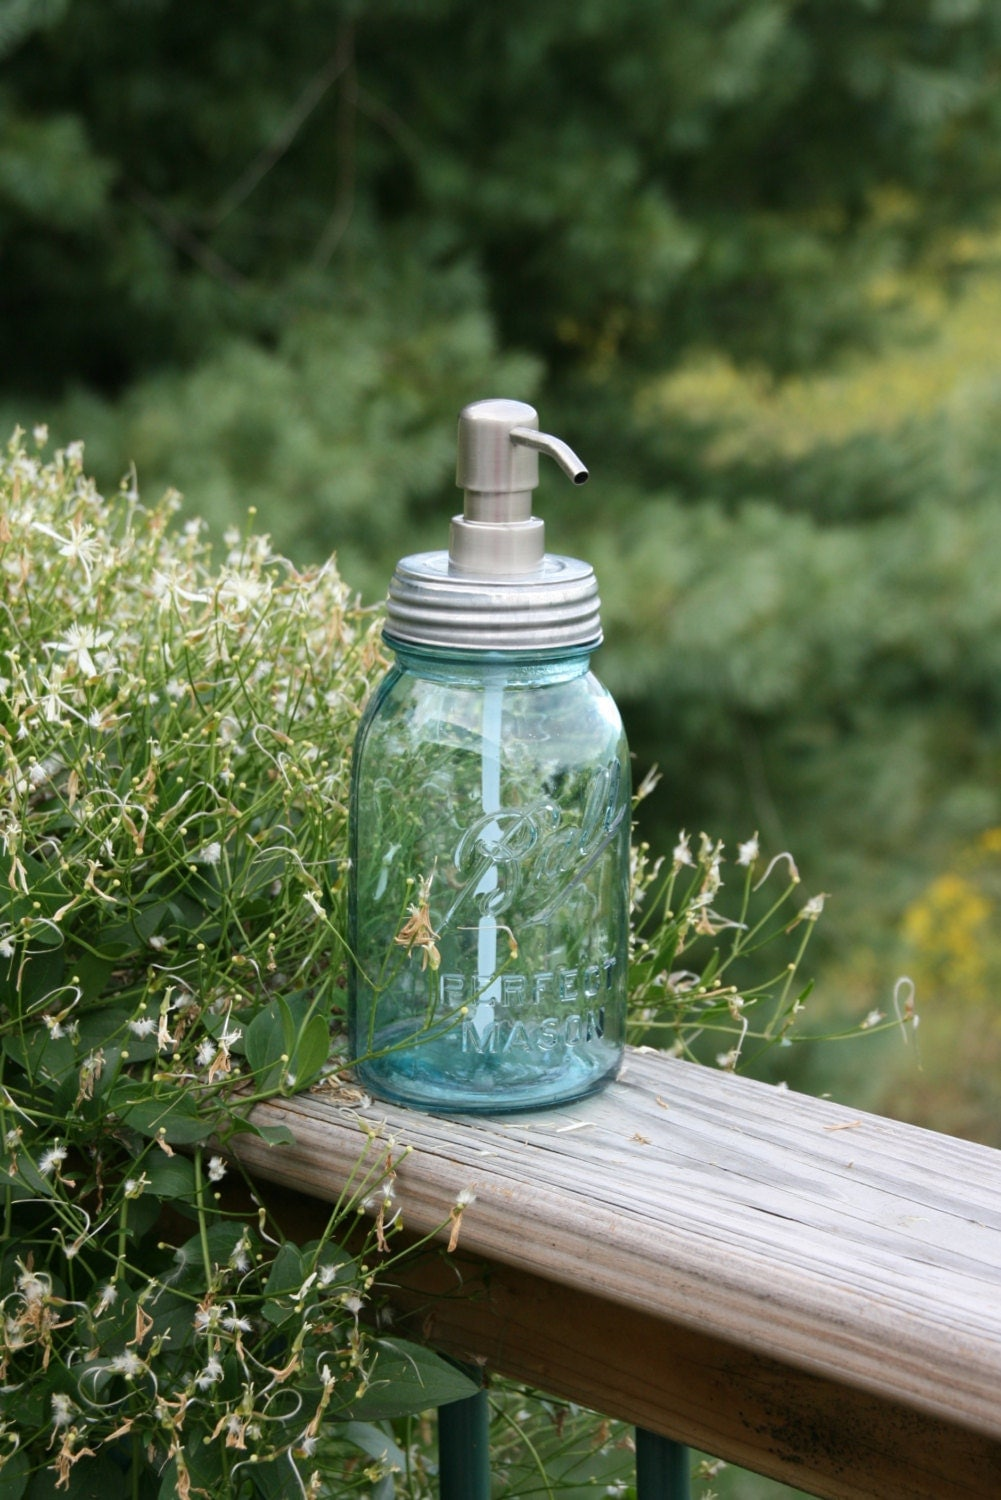 vintage blue ball jar from the 1930s